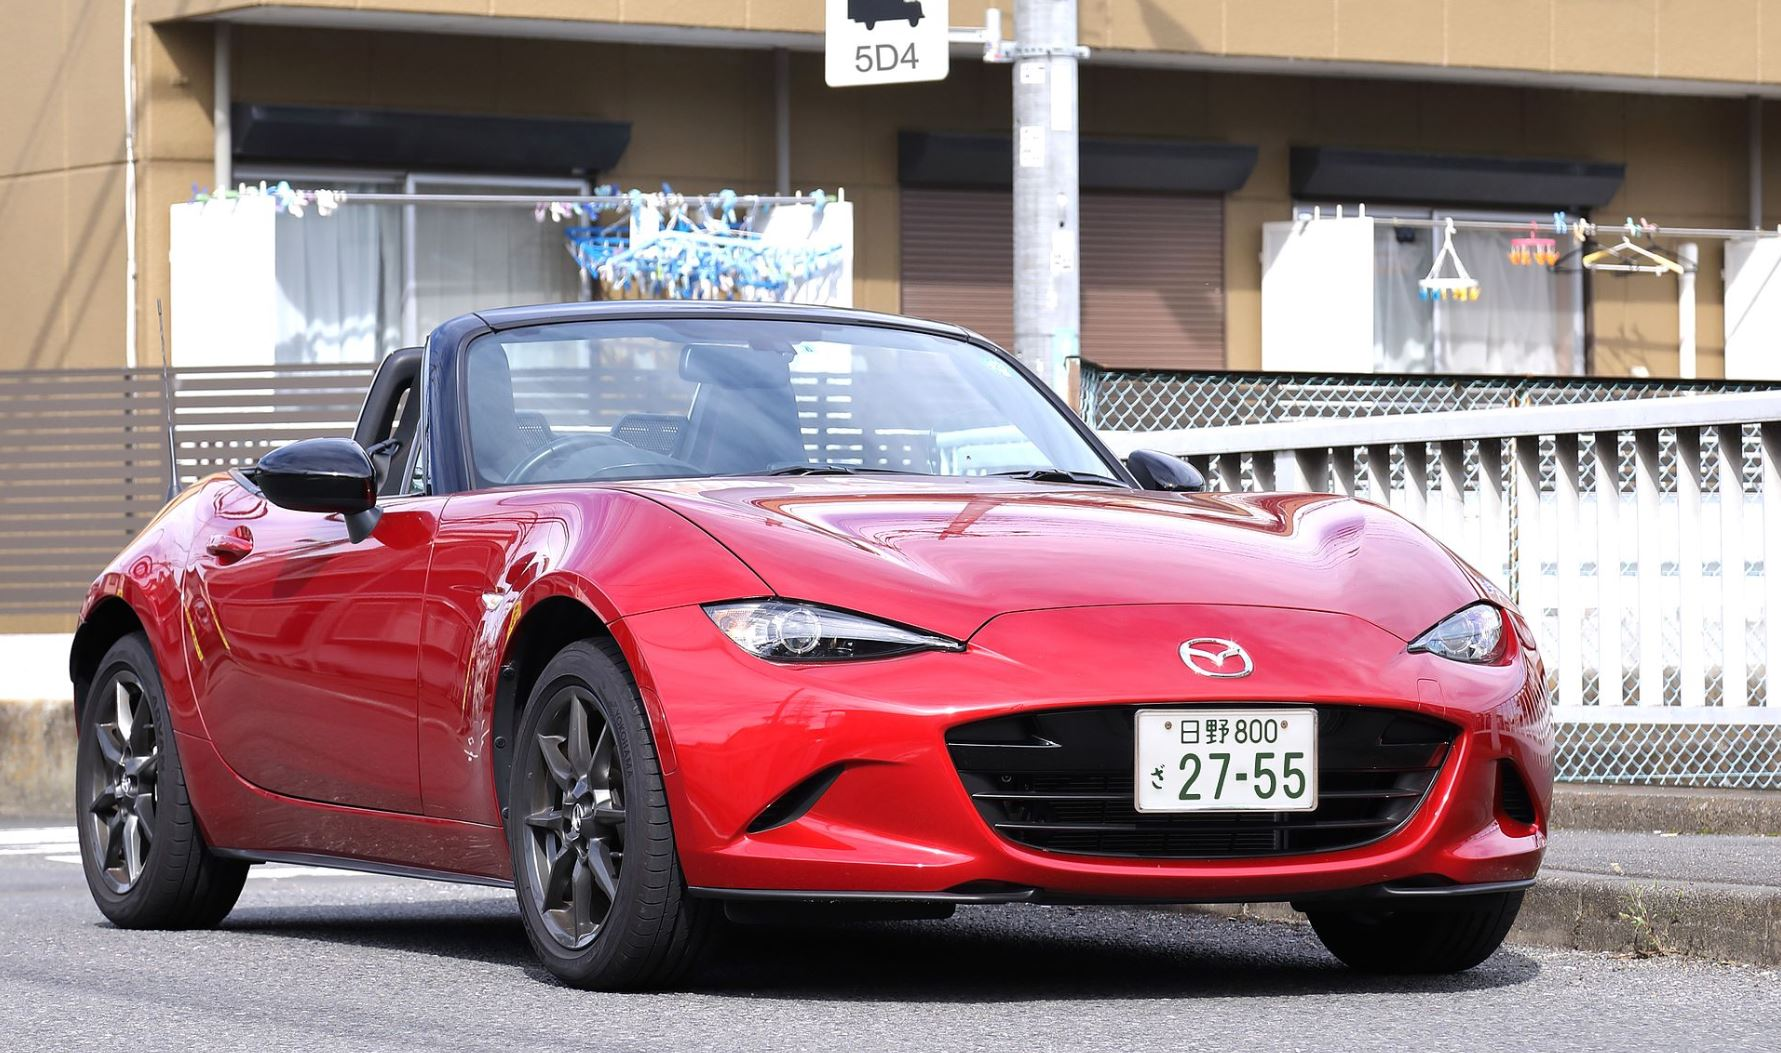 Mazda MX-5 Miata Buying Guide - Every Generation - Garage Dreams